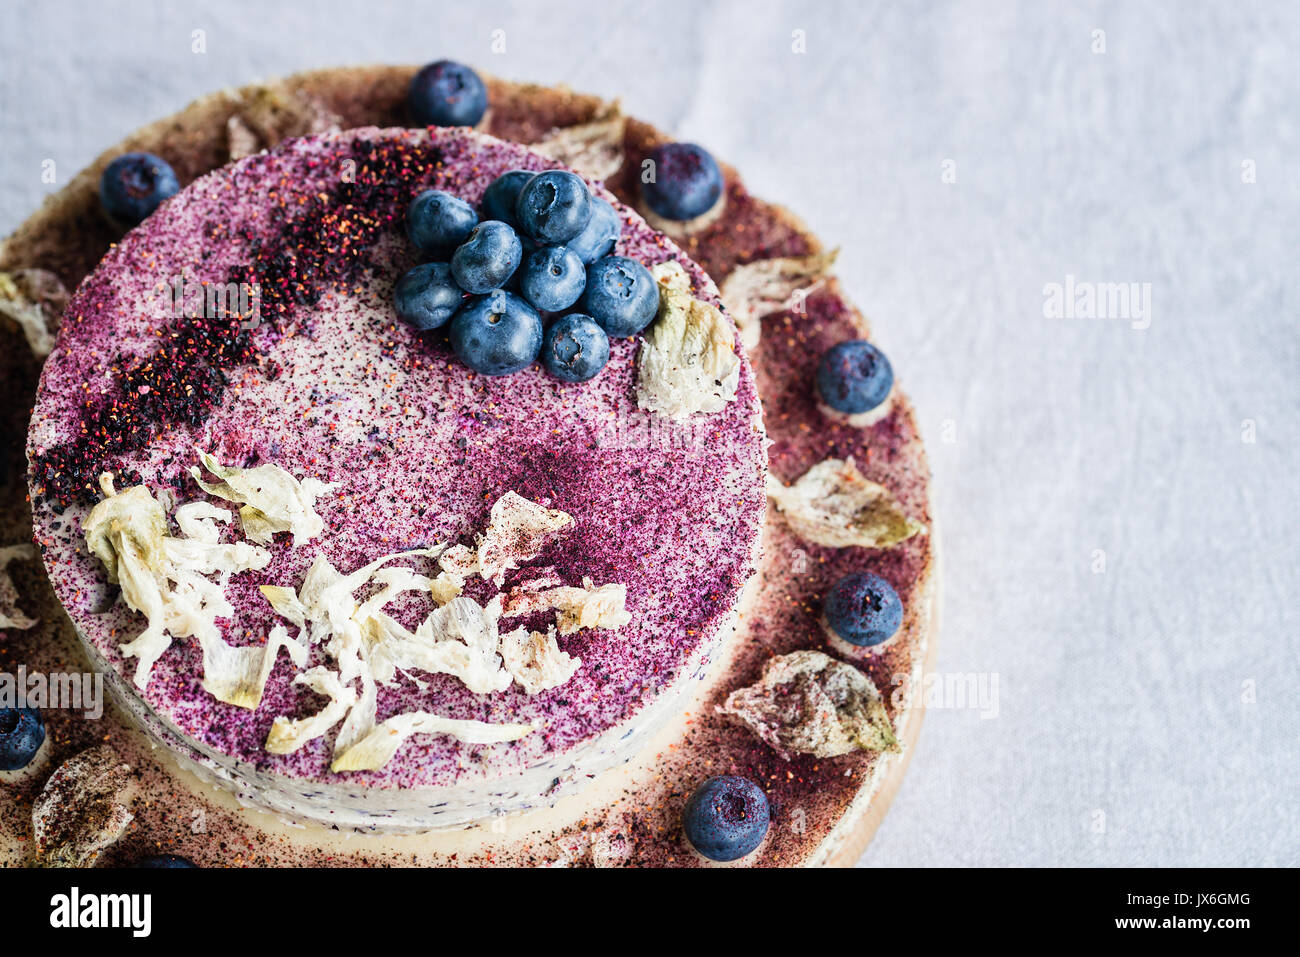 Raw blueberry cheesecake, homemade with decoration of dried flowers and fresh berries. Healthy handmade dessert. Stock Photo